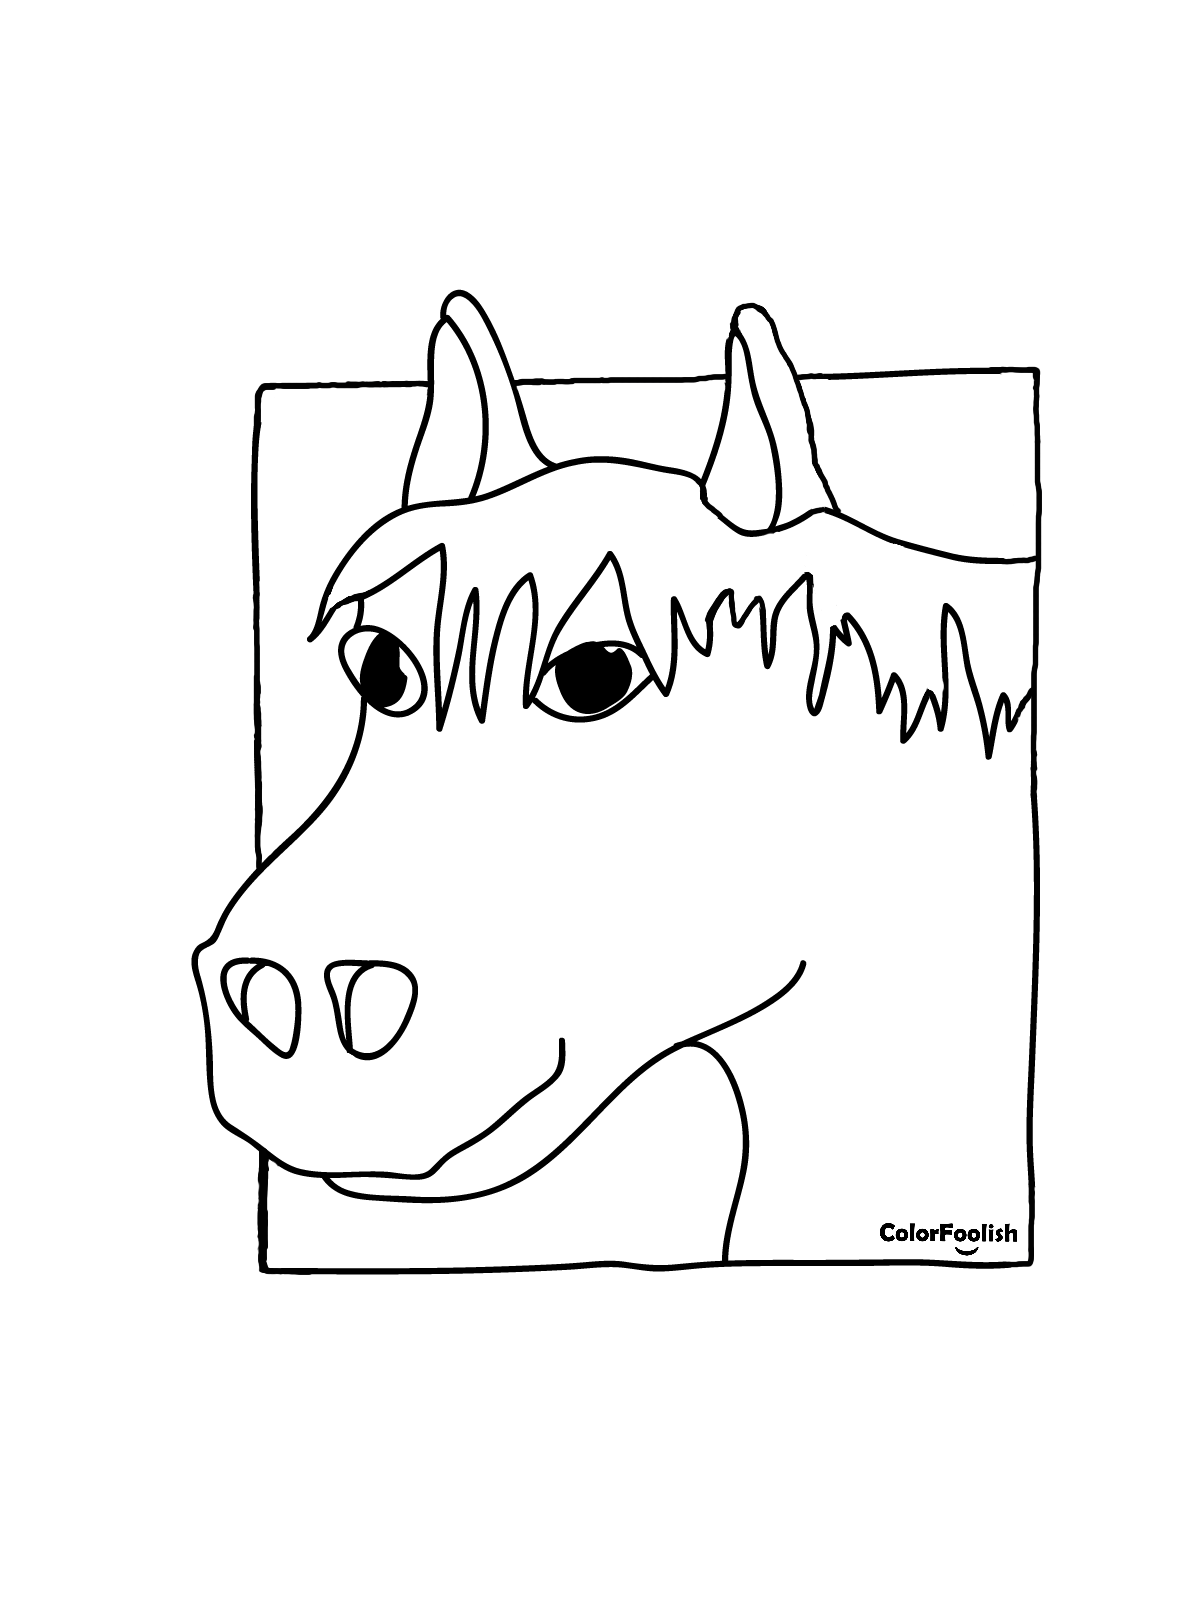 Coloring page of a horse head in a square frame